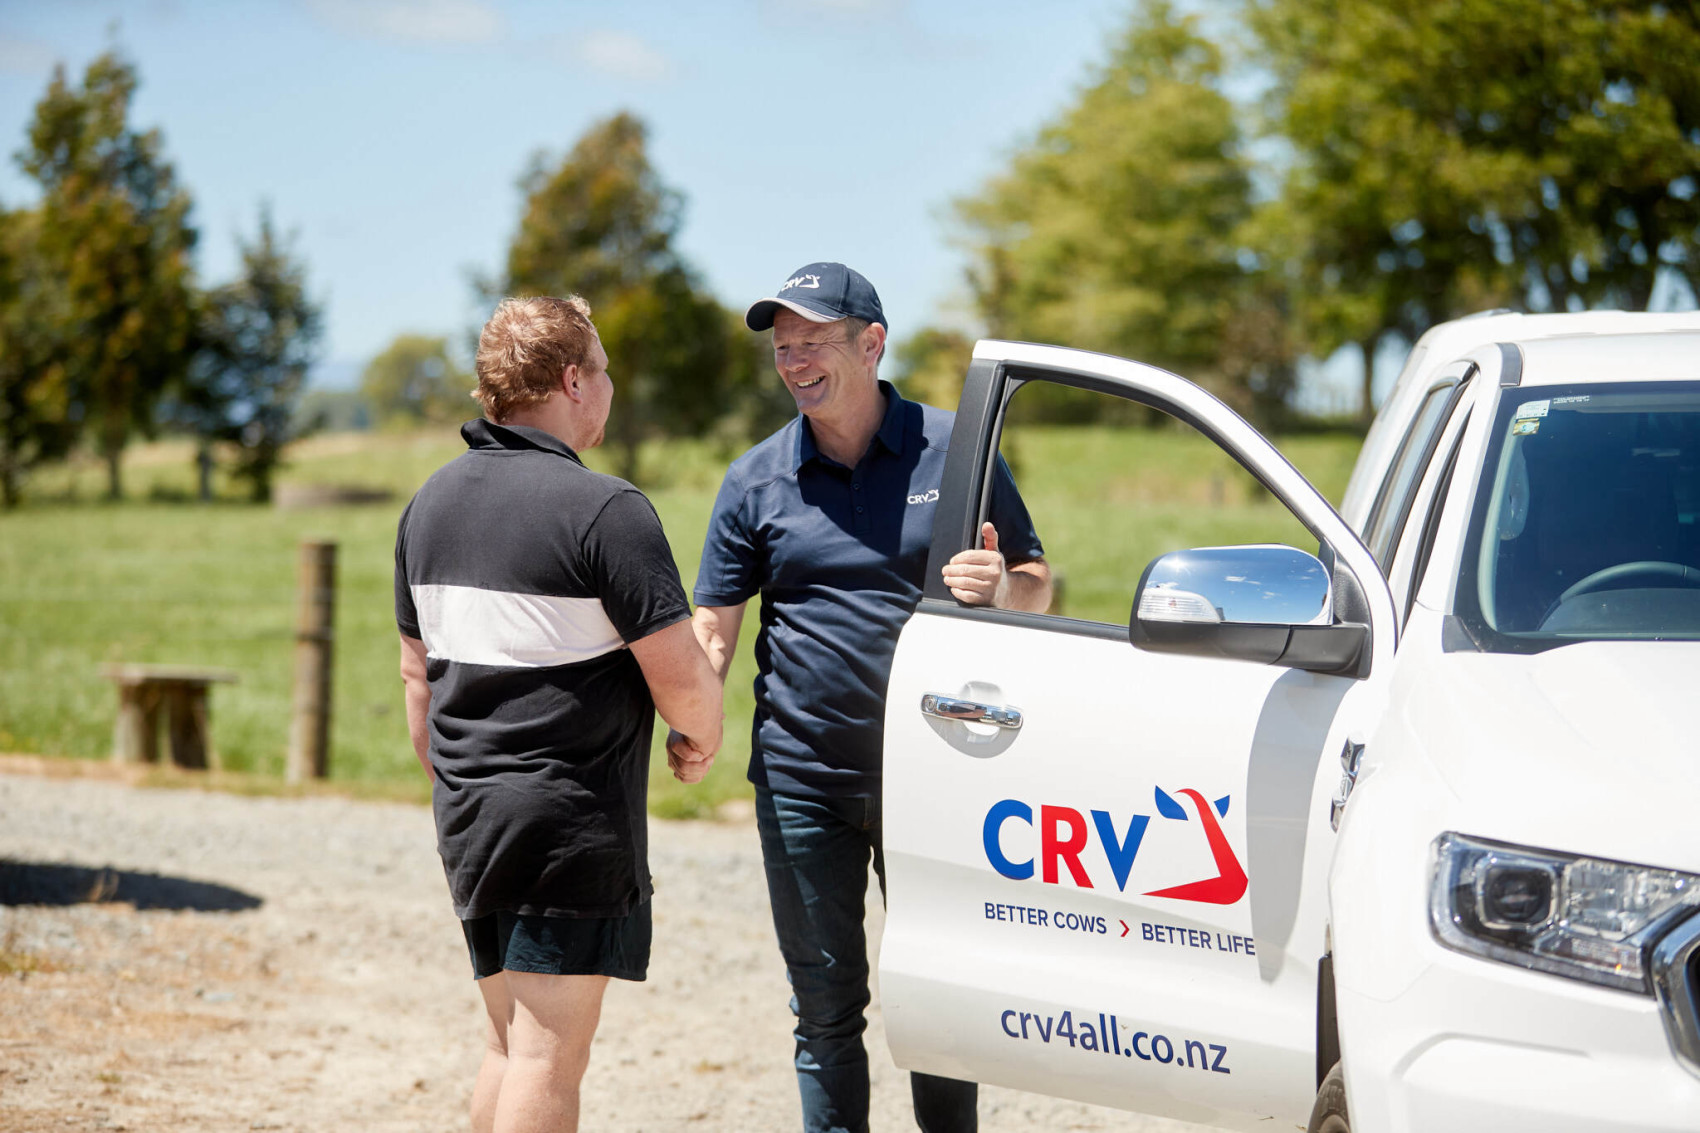 CRV NZ proudly leads the way